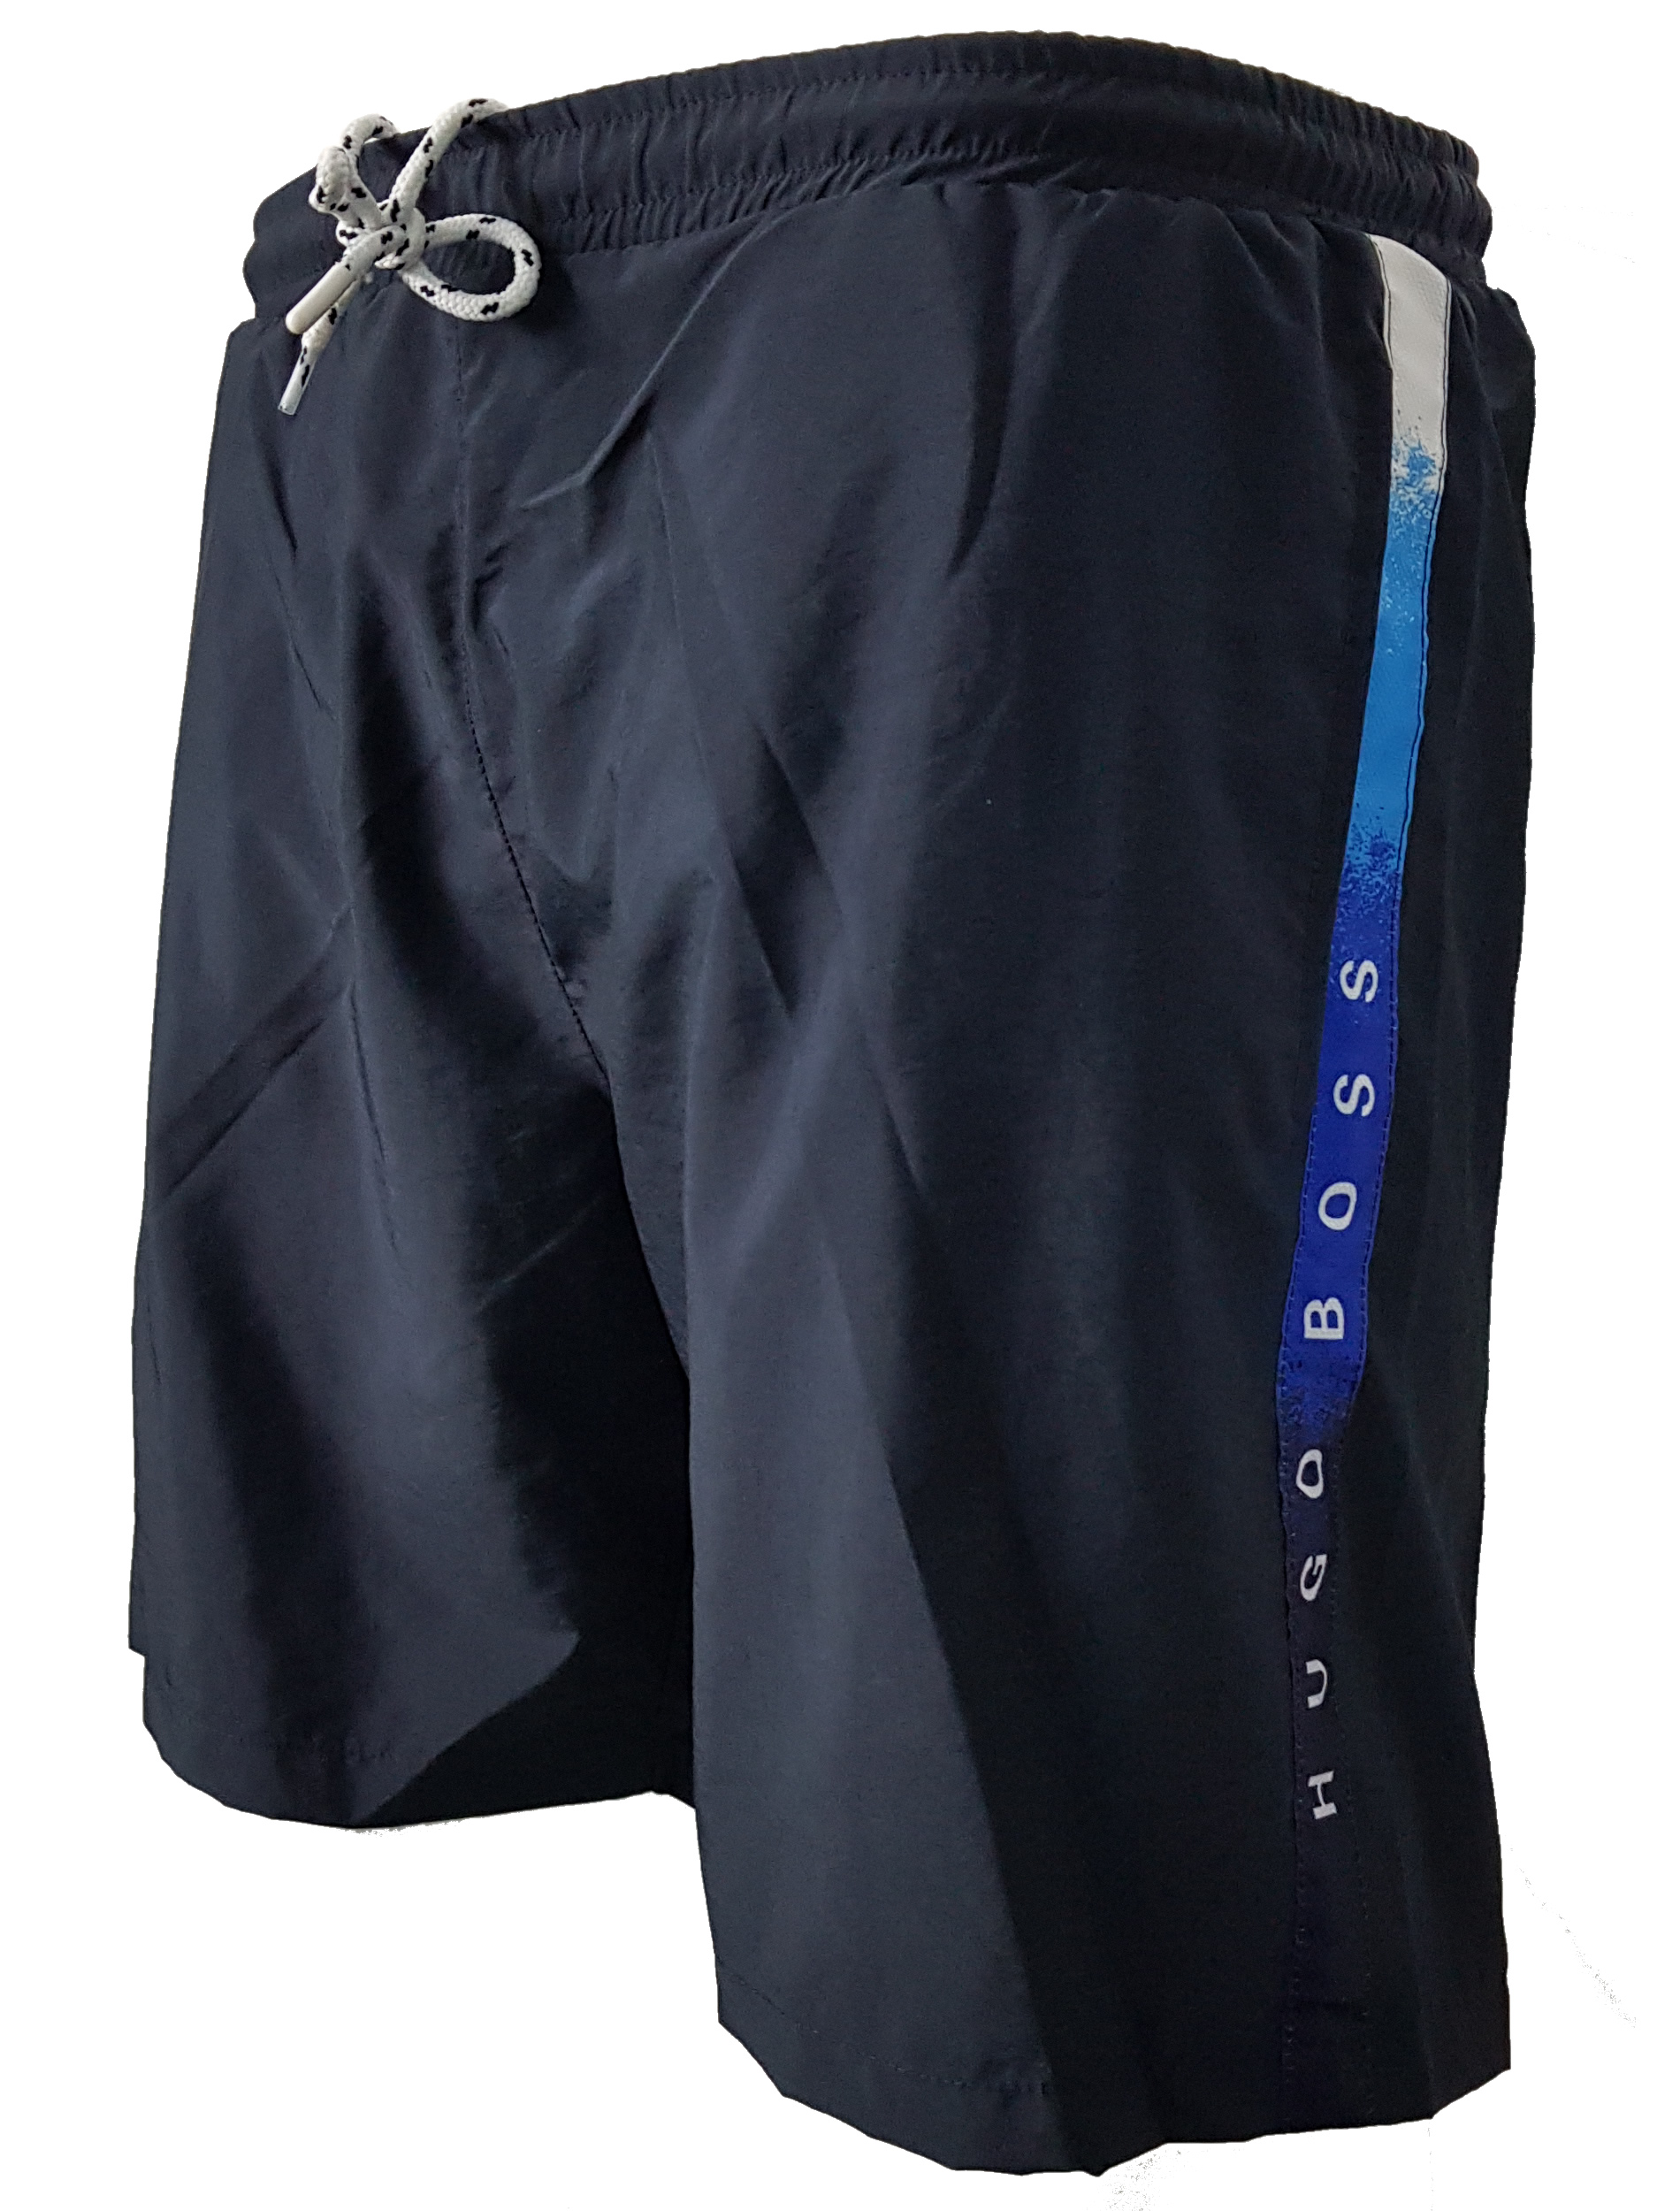 f833c8911 Hugo Boss Polyester Swim Shorts in Navy Blue | INTOTO7 Menswear